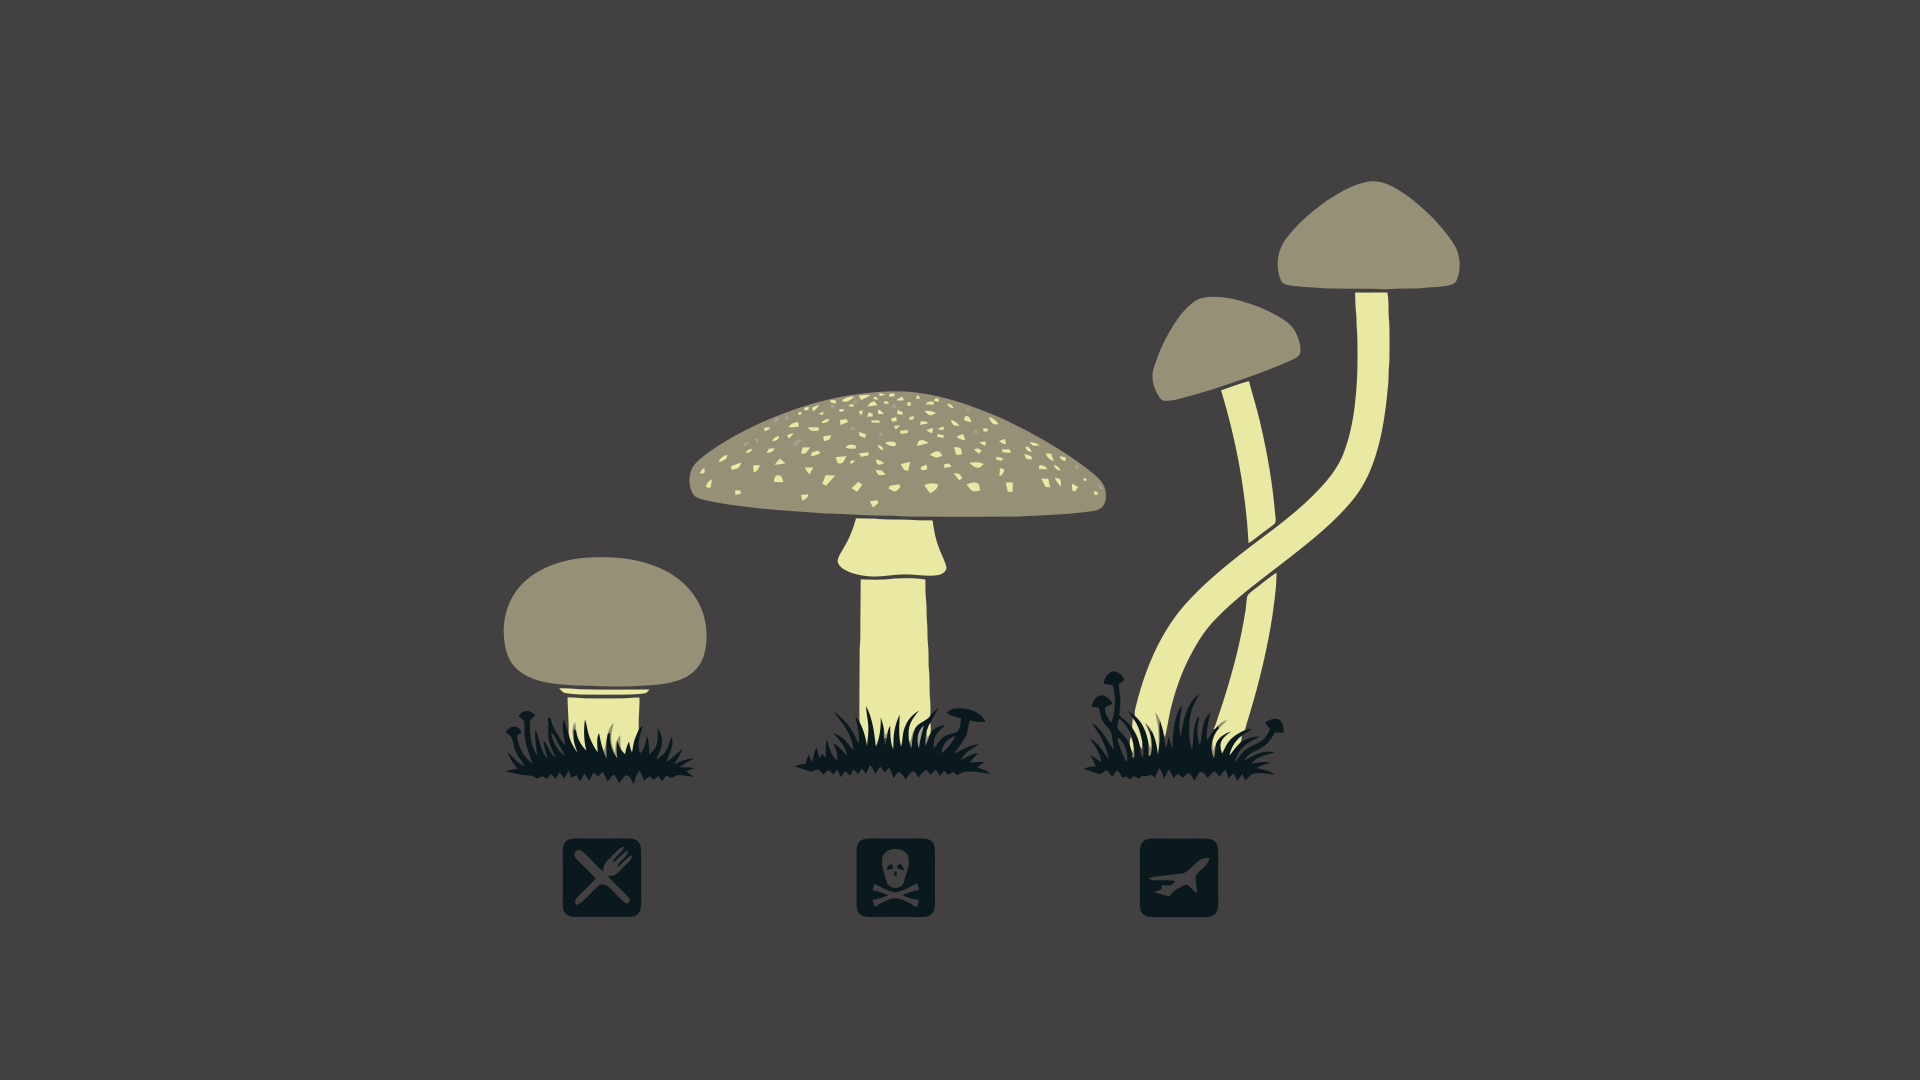 cool mushroom wallpapers